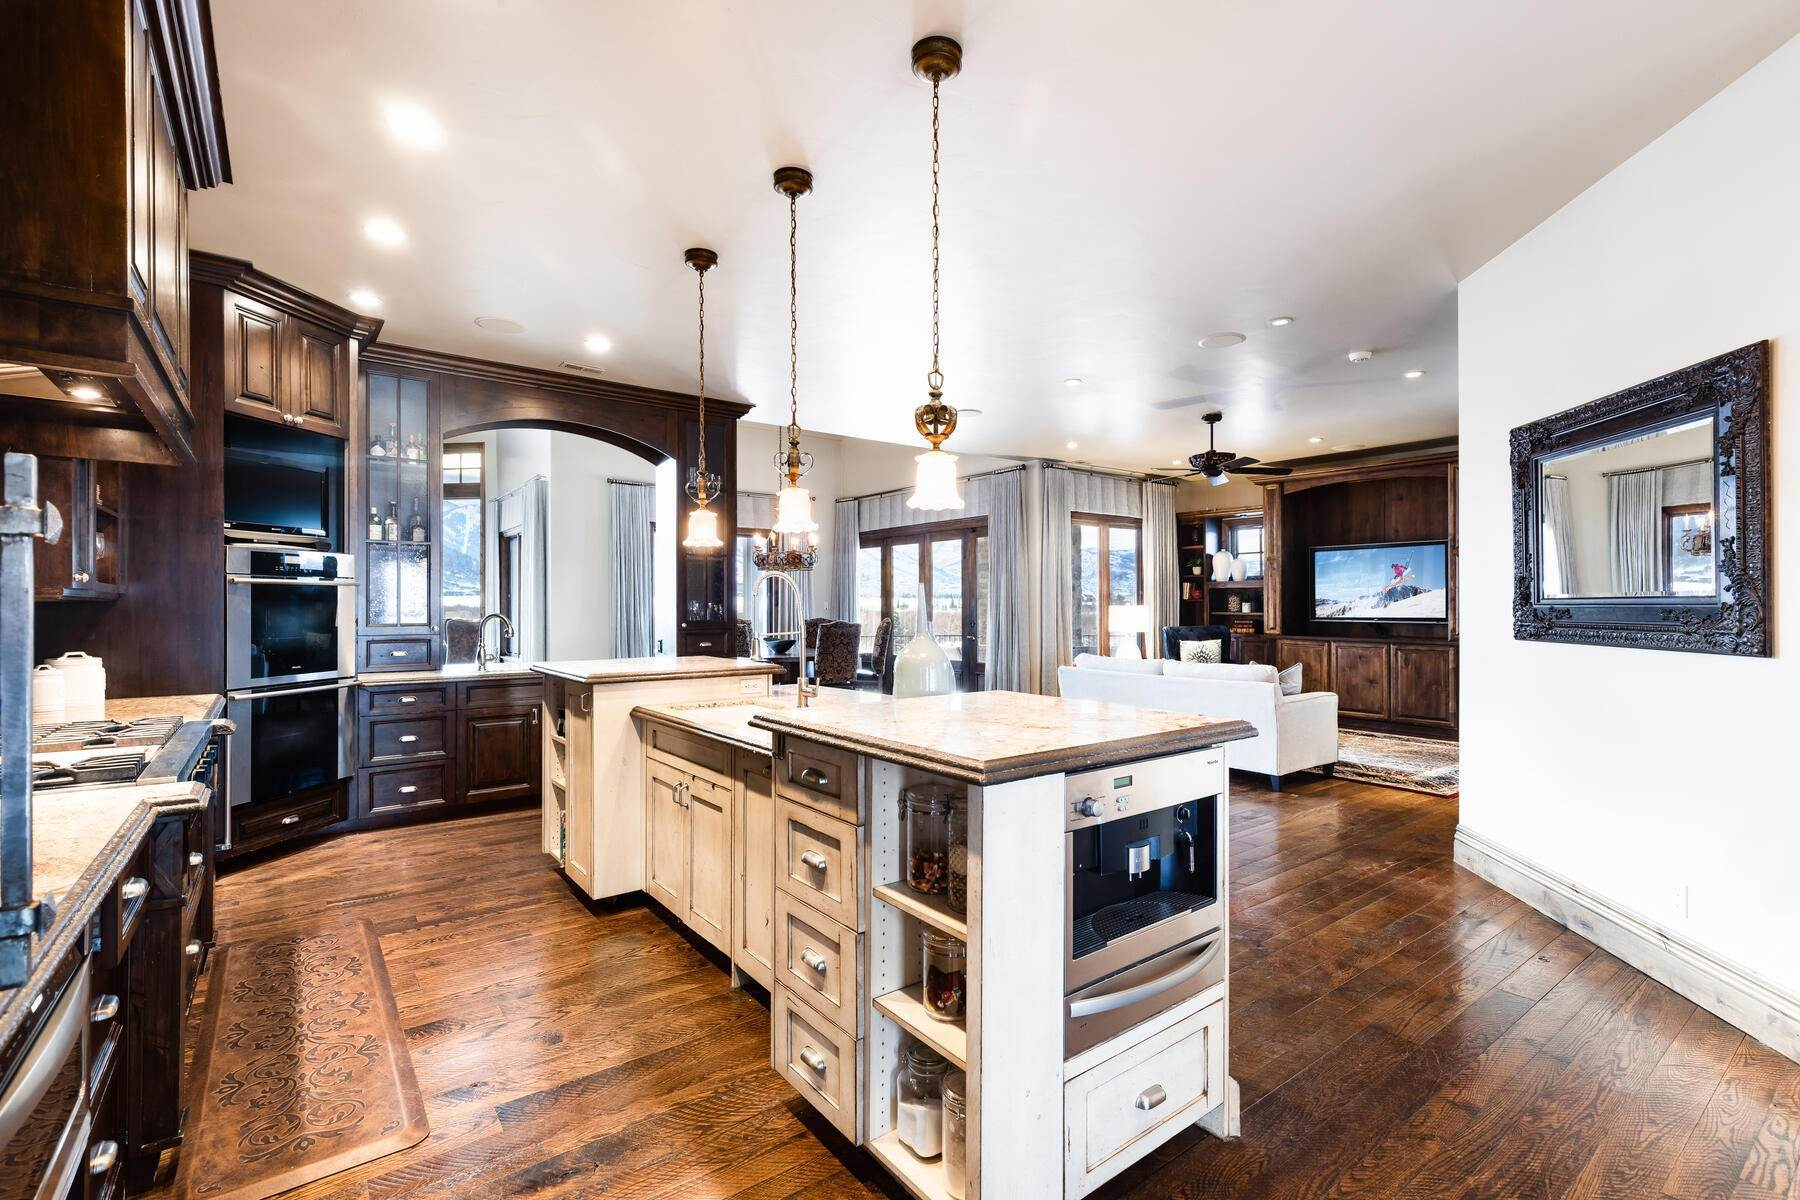 5. Single Family Homes for Sale at Rare Ranch Creek Estates Home Boasts over 3 Acres with Unparalleled Views 4400 N Ranch Creek Ln Park City, Utah 84098 United States